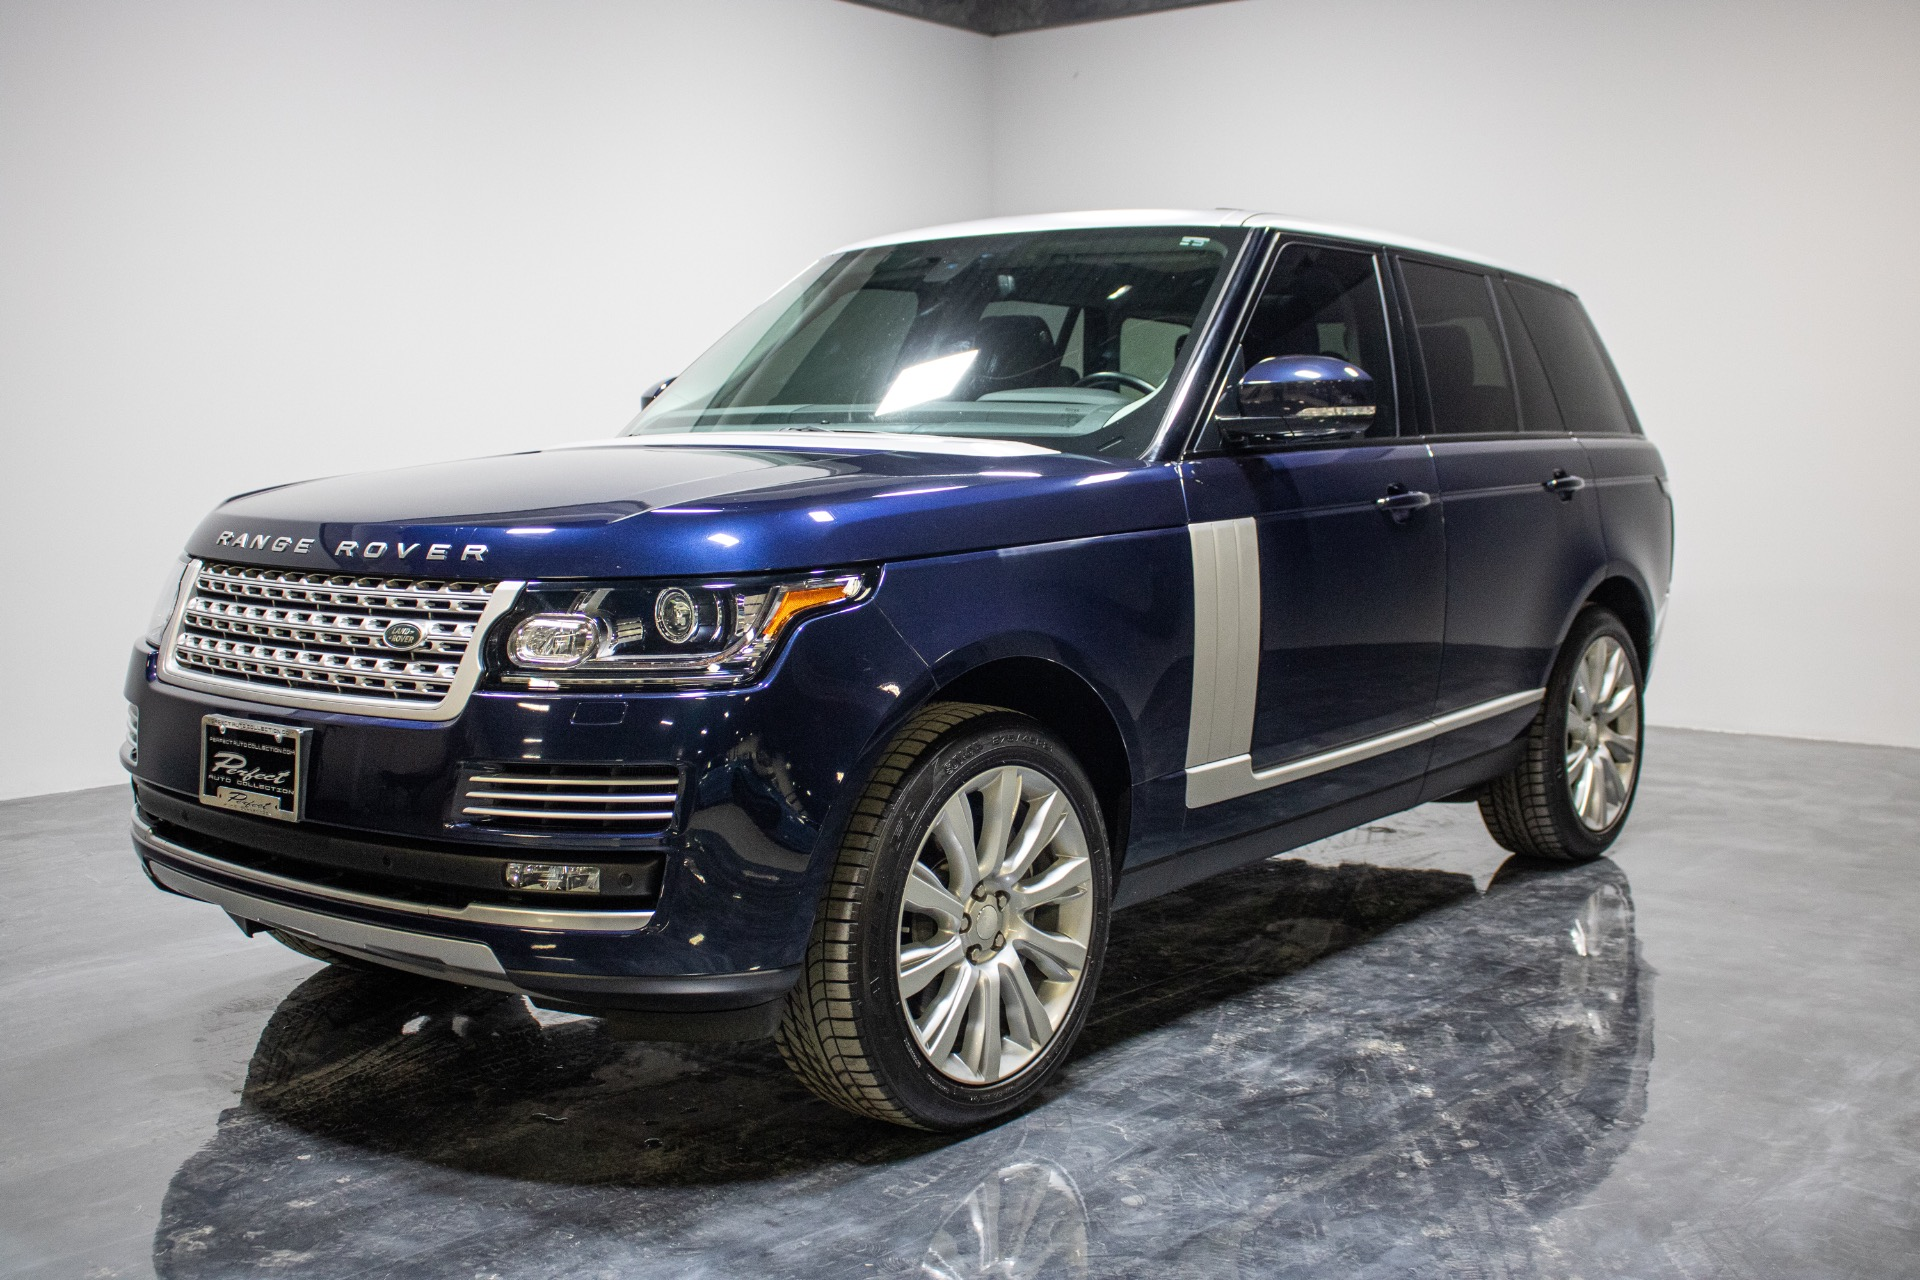 Used 2015 Land Rover Range Rover Supercharged Sport Utility 4D for sale Sold at Perfect Auto Collection in Akron OH 44310 1